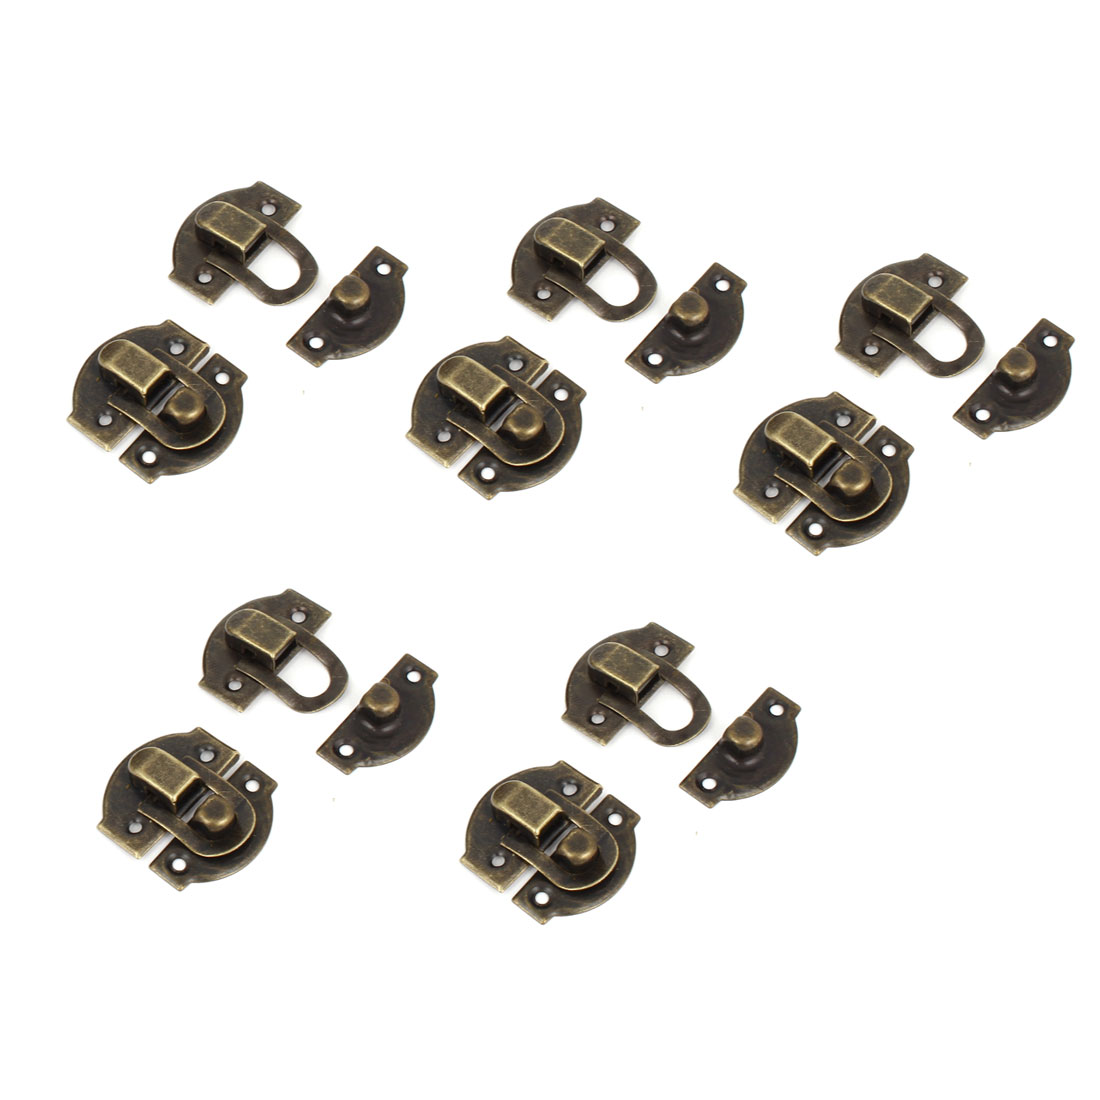 10 Pcs Antique Wood Box Latch Sets Case Lock Hinge Bronze Tone 27mm Long